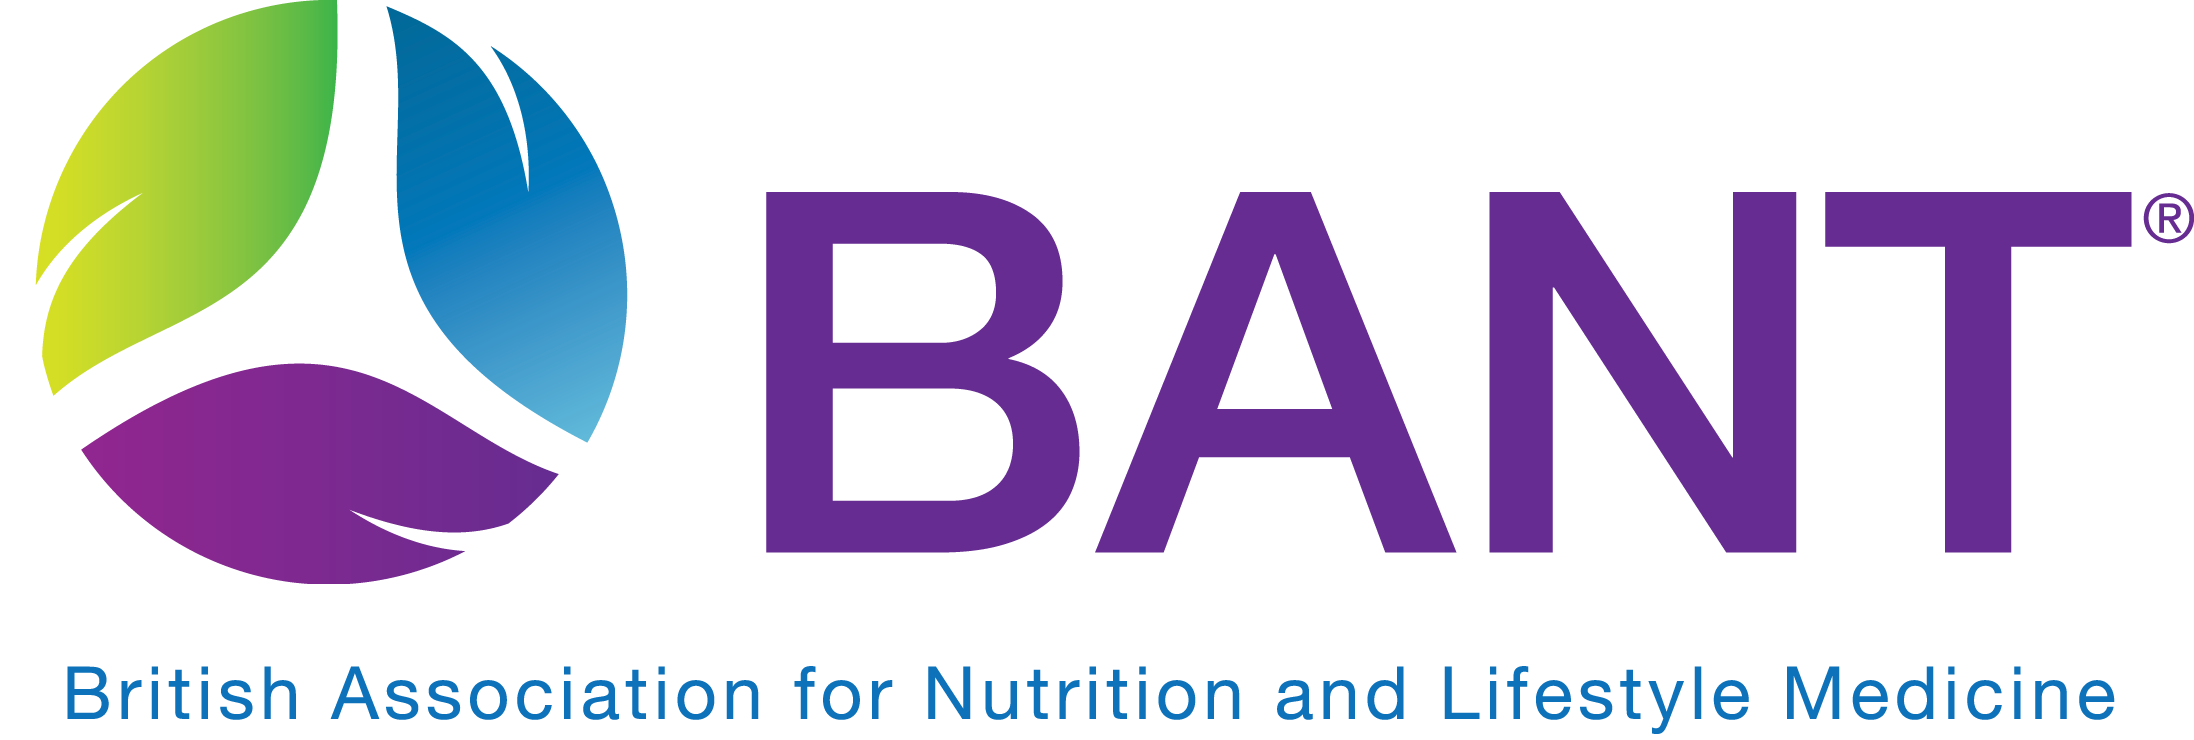 British Association for Nutritional Therapy and Lifestyle Medicine (BANT)